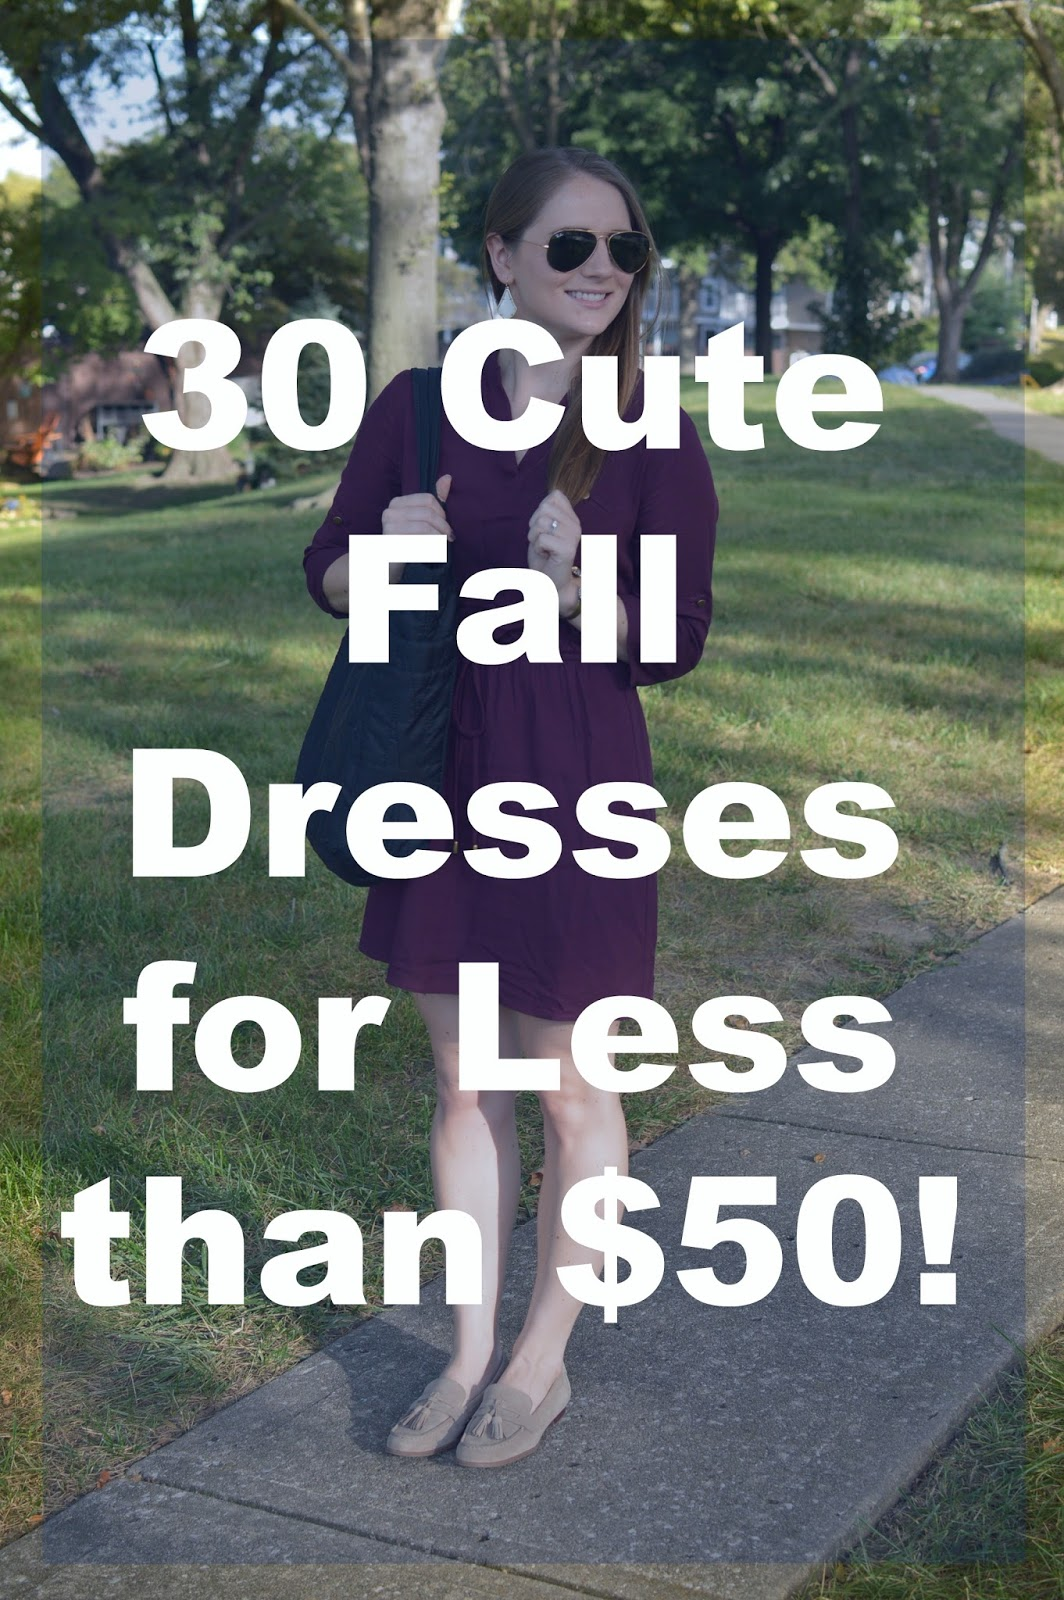 30 cute fall dresses for less than $50 | a memory of us fashion blog | cute dresses for fall for less than $50